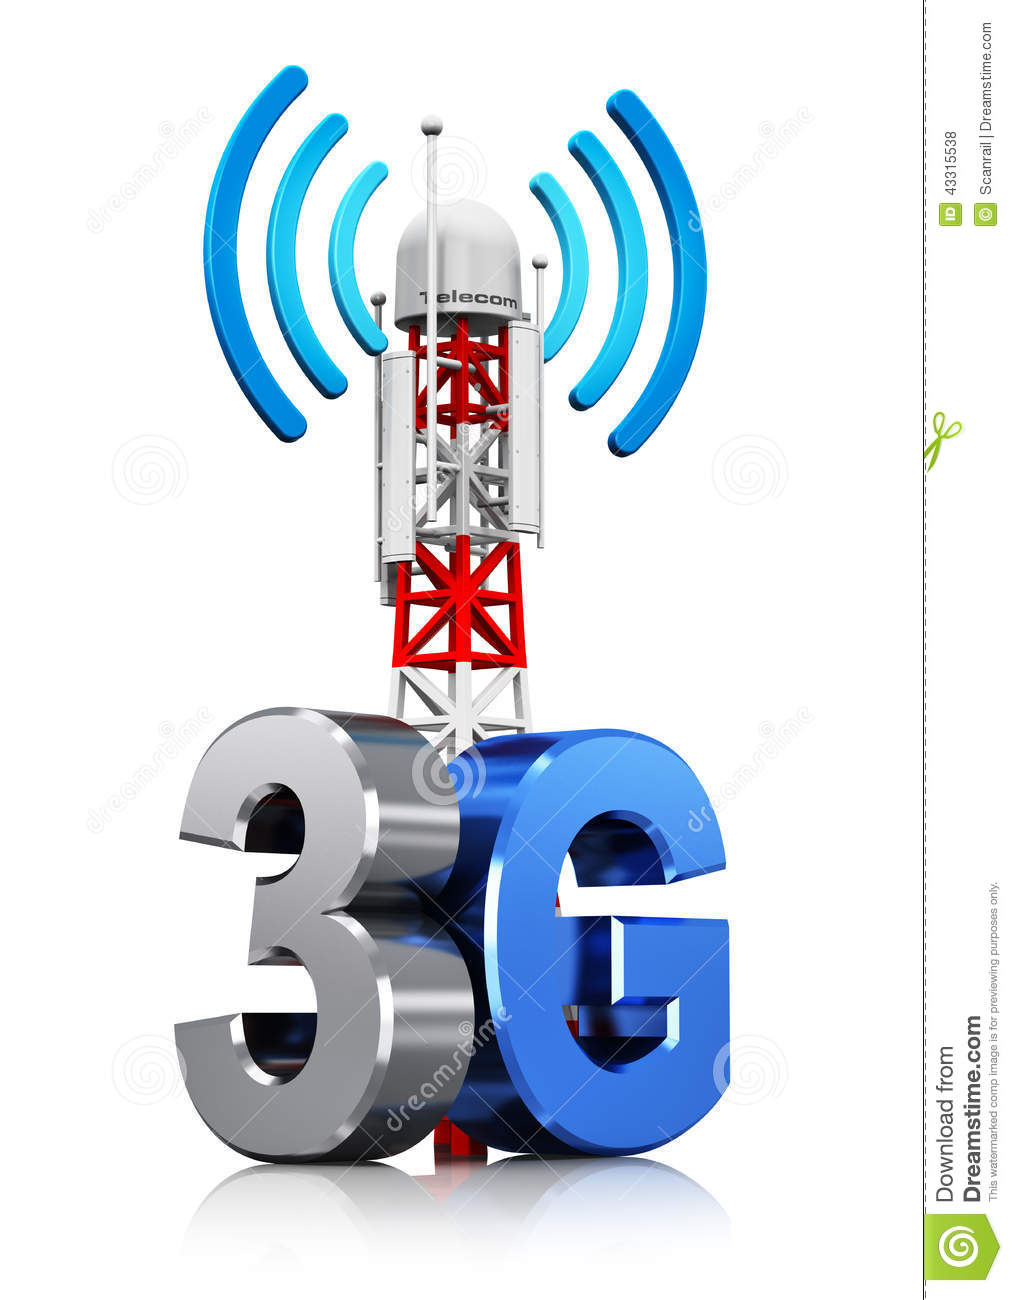 3g in mobile communication 4g is the fourth generation of mobile phone communications standards it is a successor of the 3g and provides ultra-broadband internet access for mobile devices.